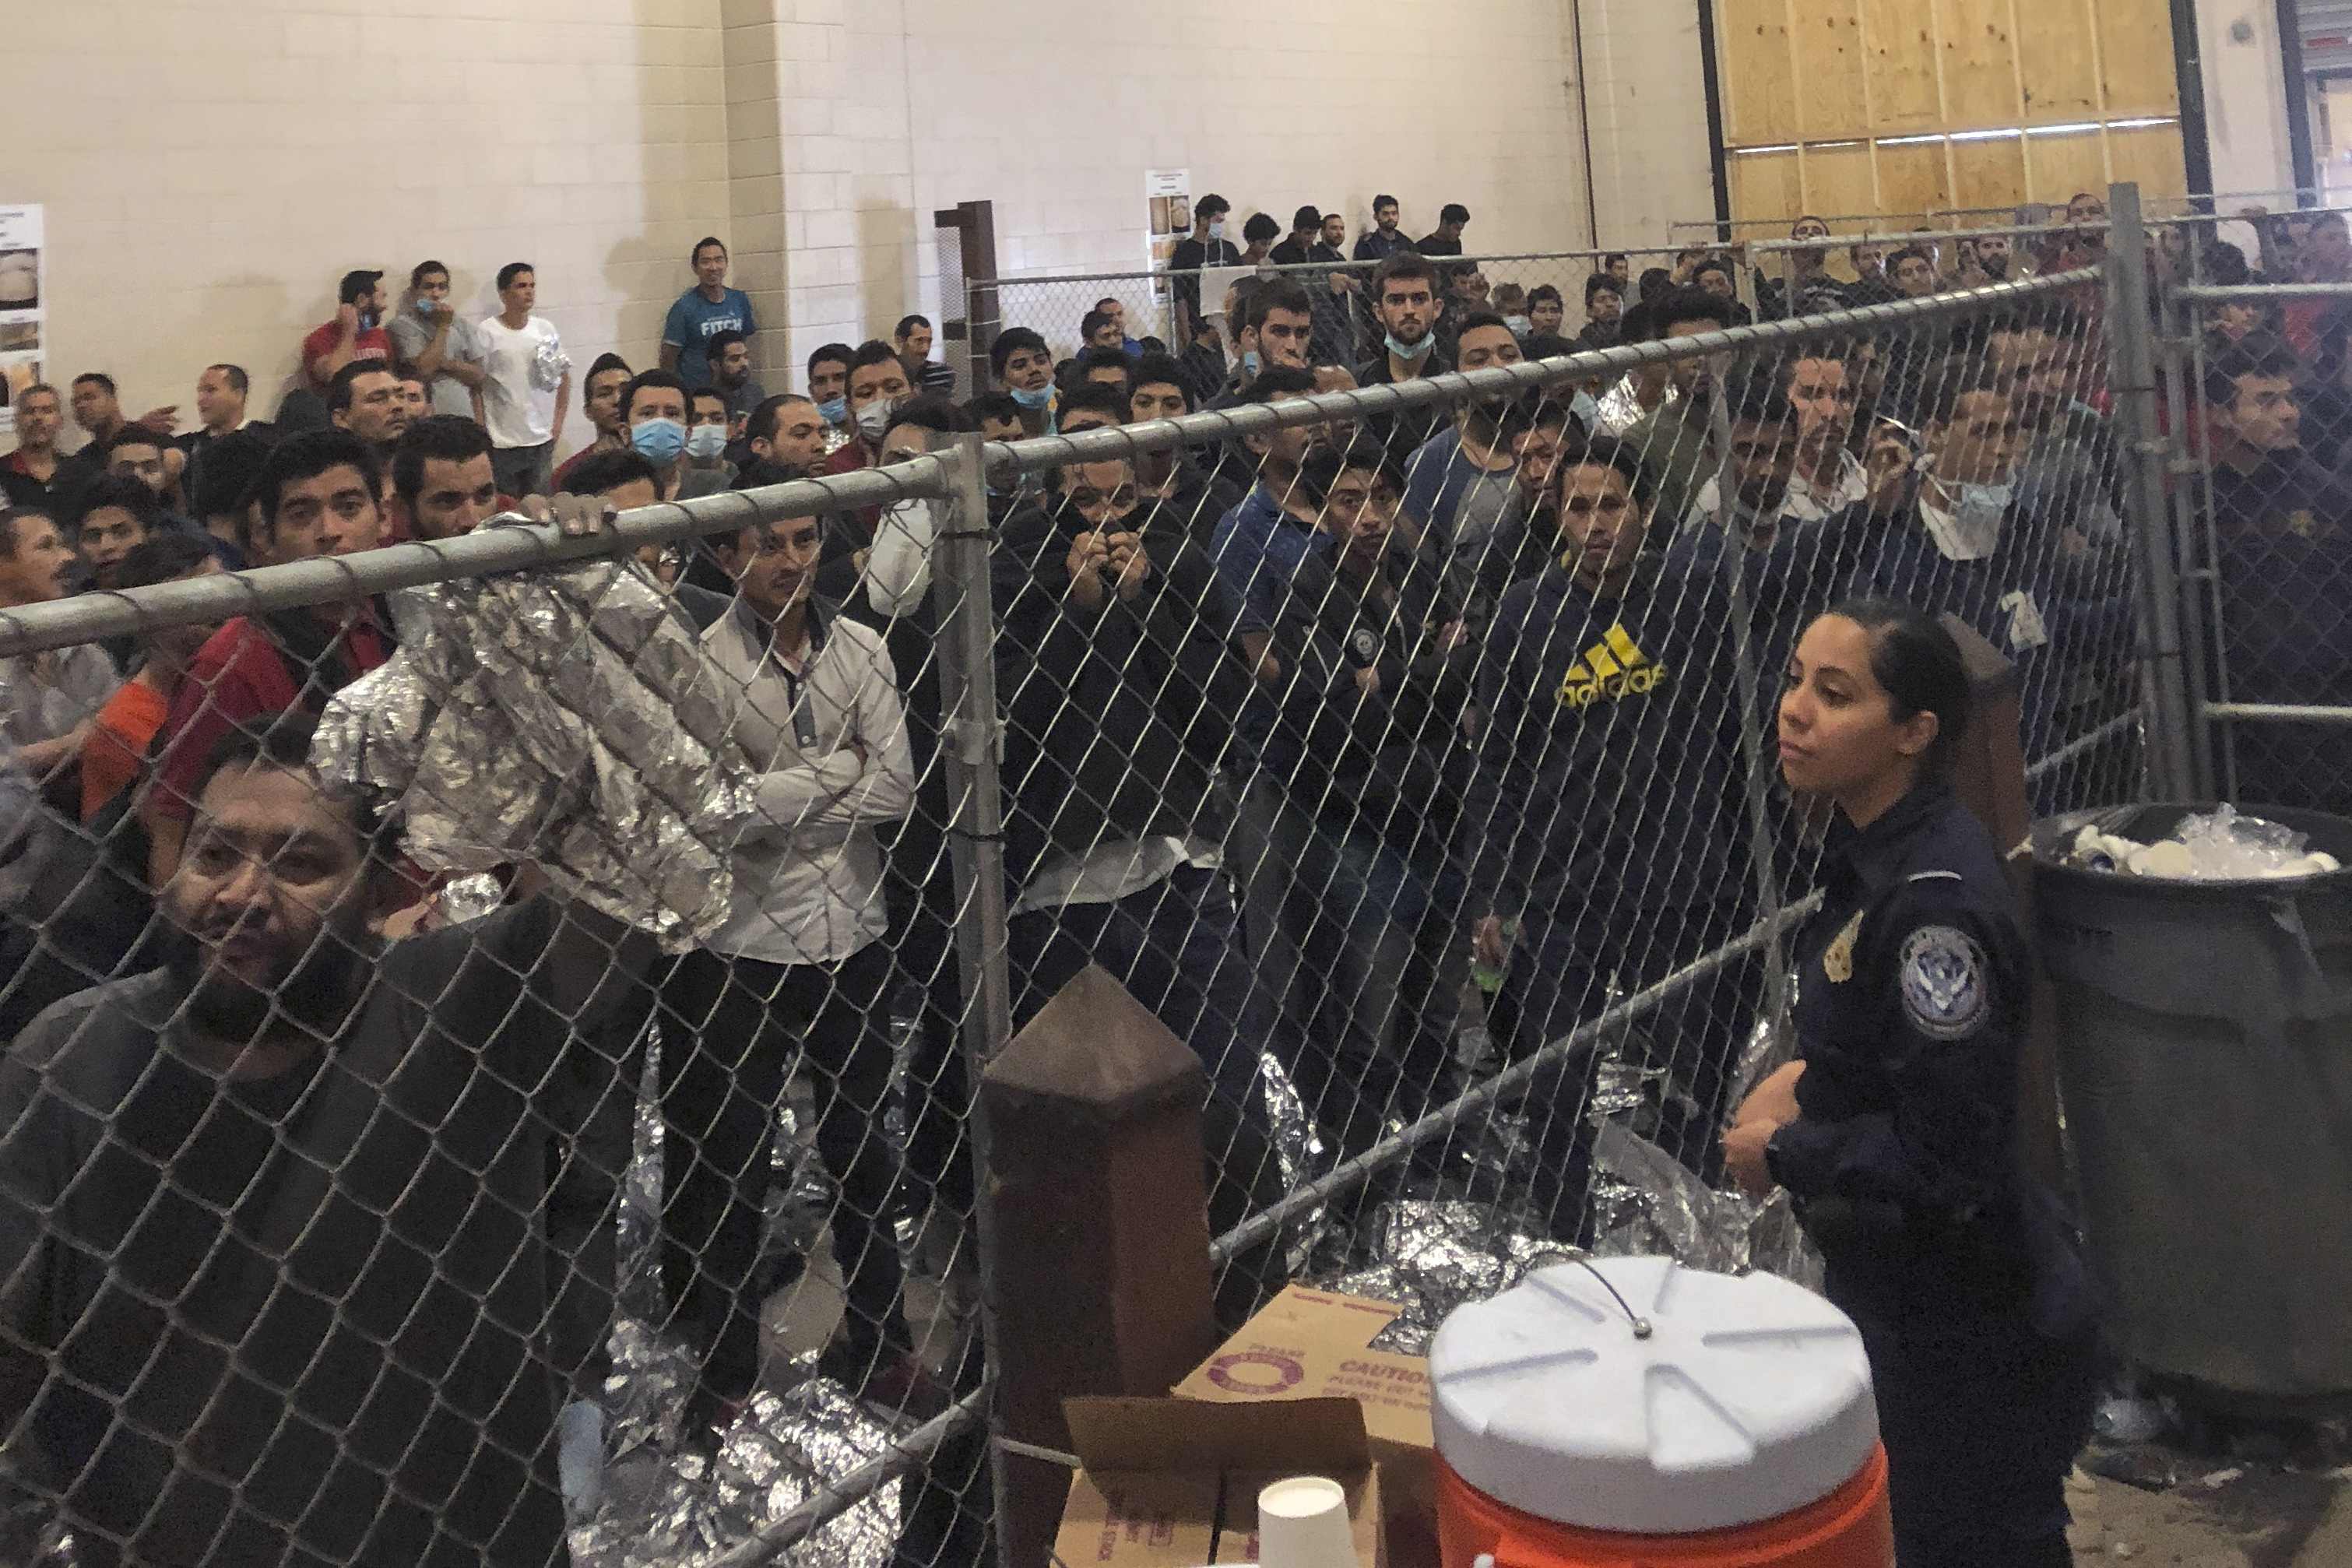 """Men stand in a U.S. Immigration and Border Enforcement detention center in McAllen, Texas, Friday, July 12, 2019, as Vice President Mike Pence visits. Acknowledging """"this is tough stuff,"""" Pence says he was not surprised by what he saw as he toured the McA"""